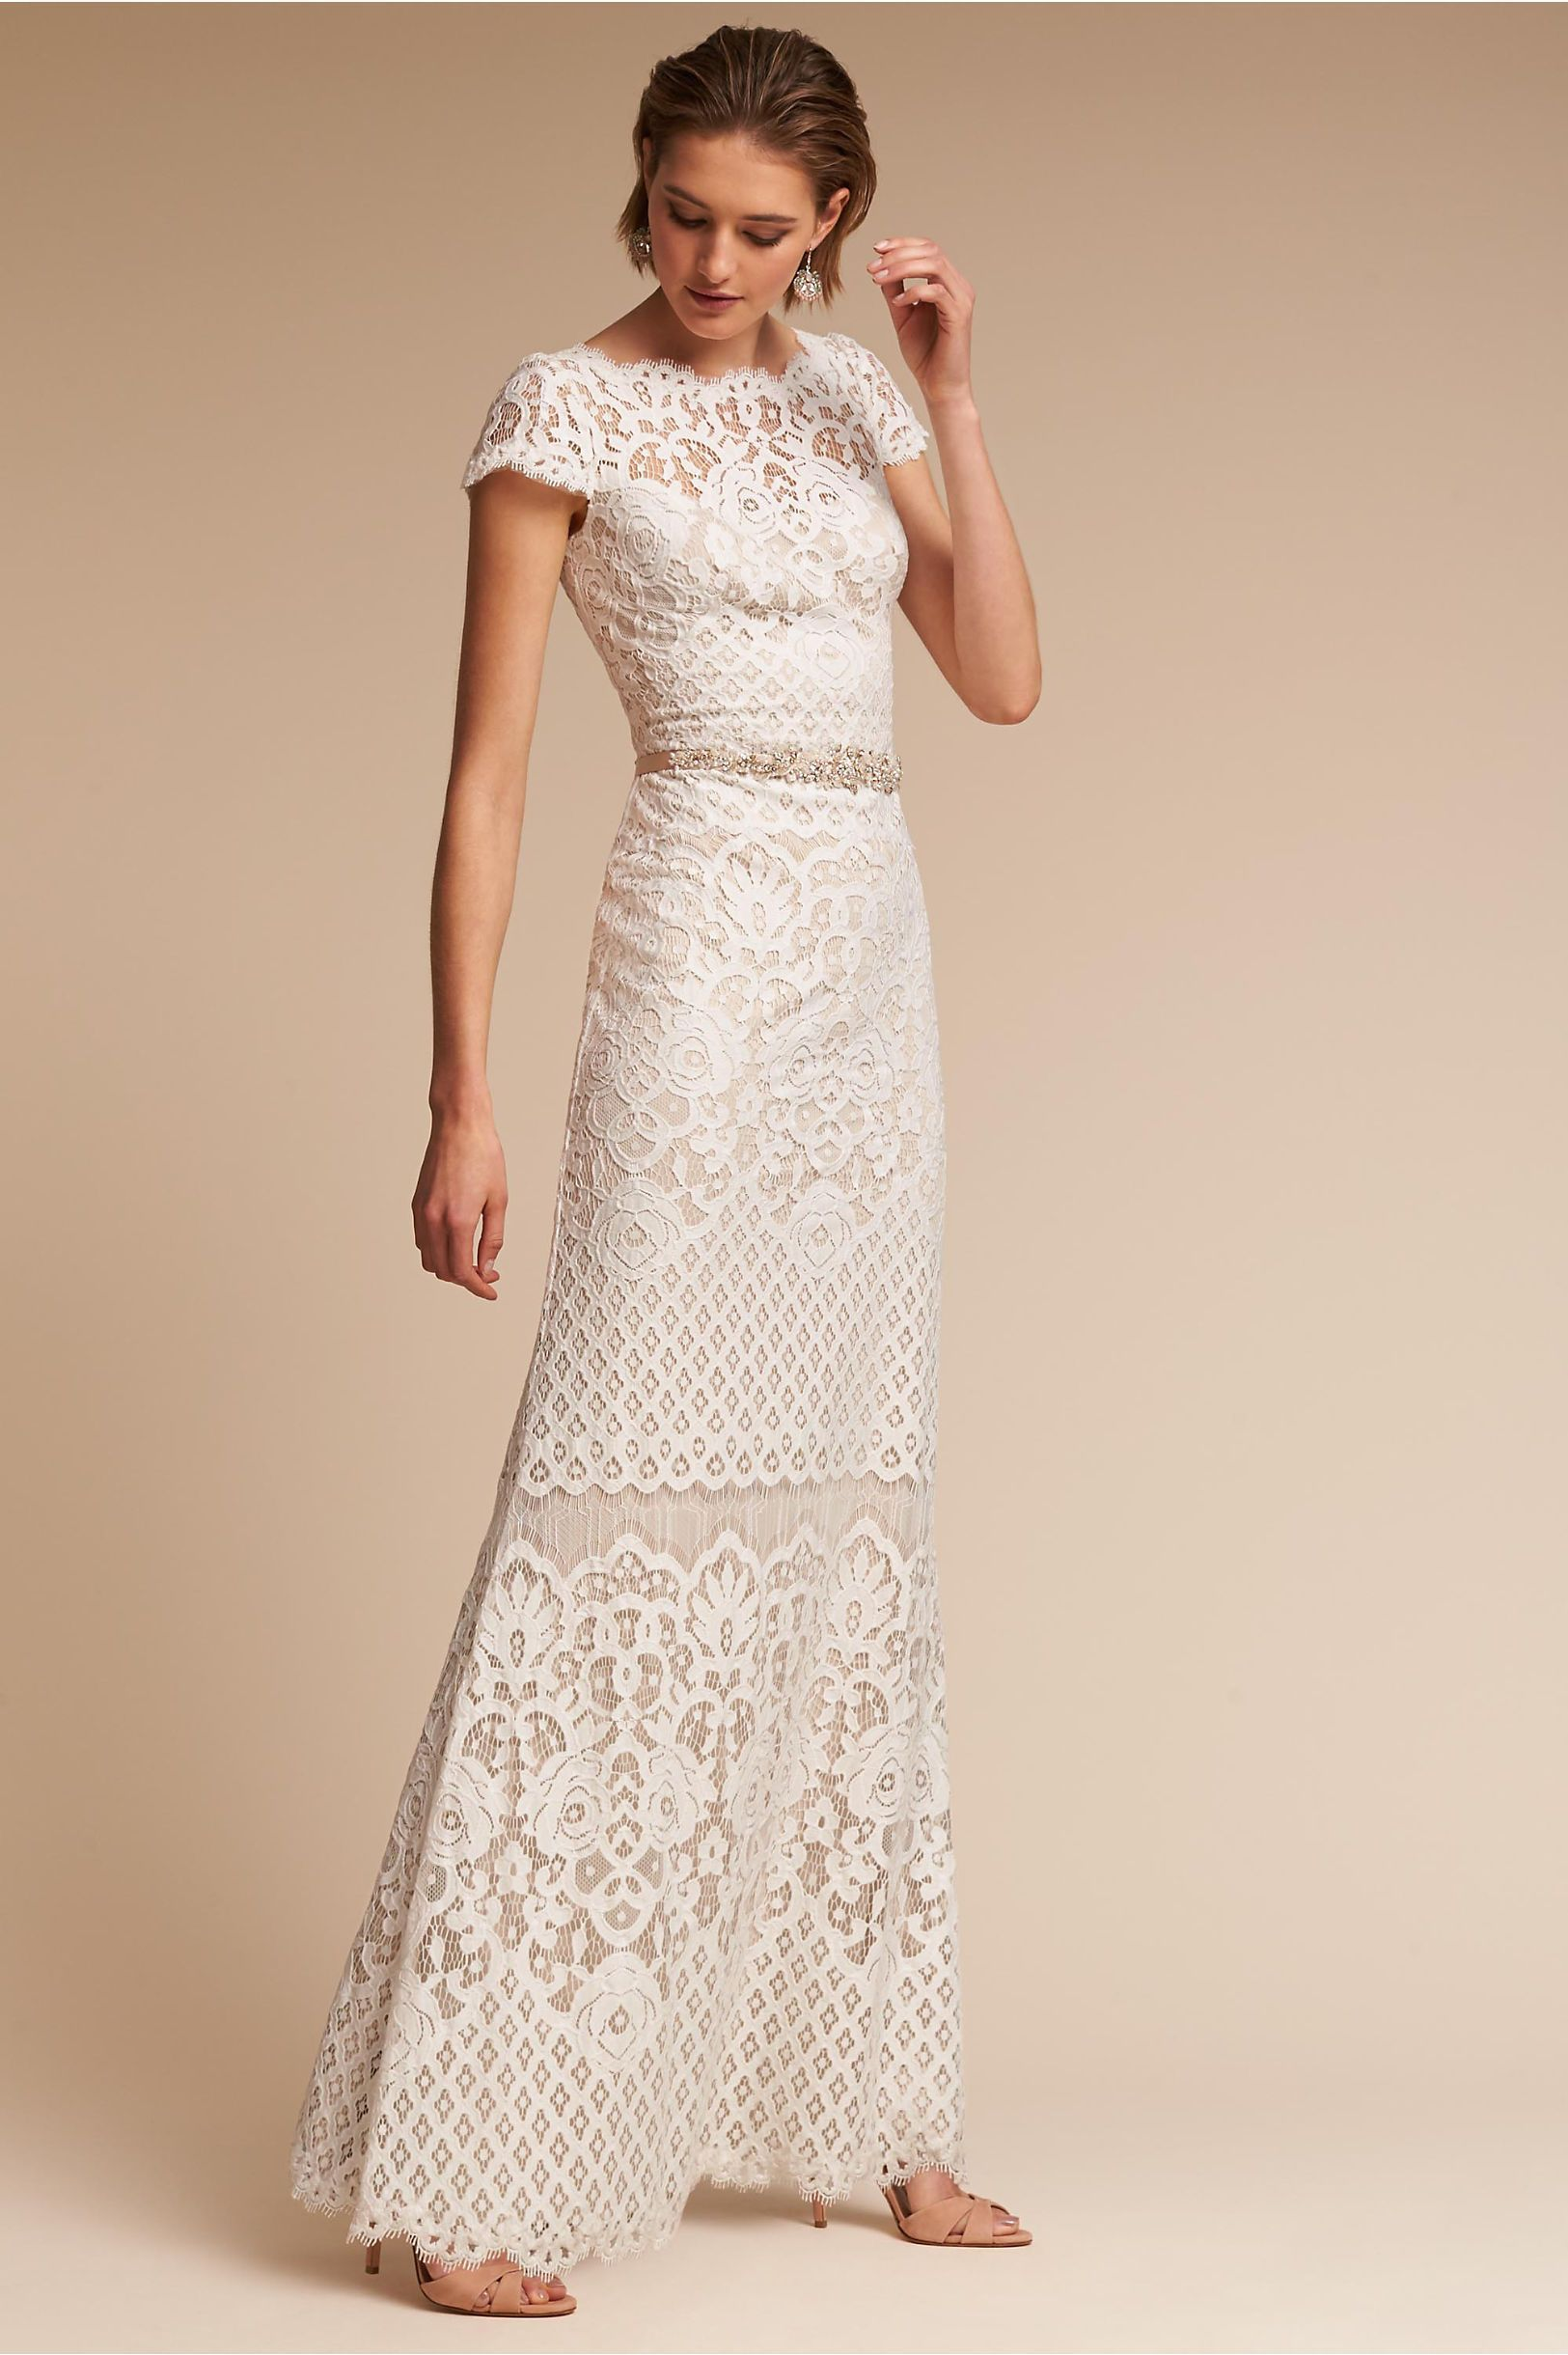 d7e8b731d450 5 Affordable Wedding Dresses That Look Like Pippa Middleton's - Peridot Gown  from InStyle.com